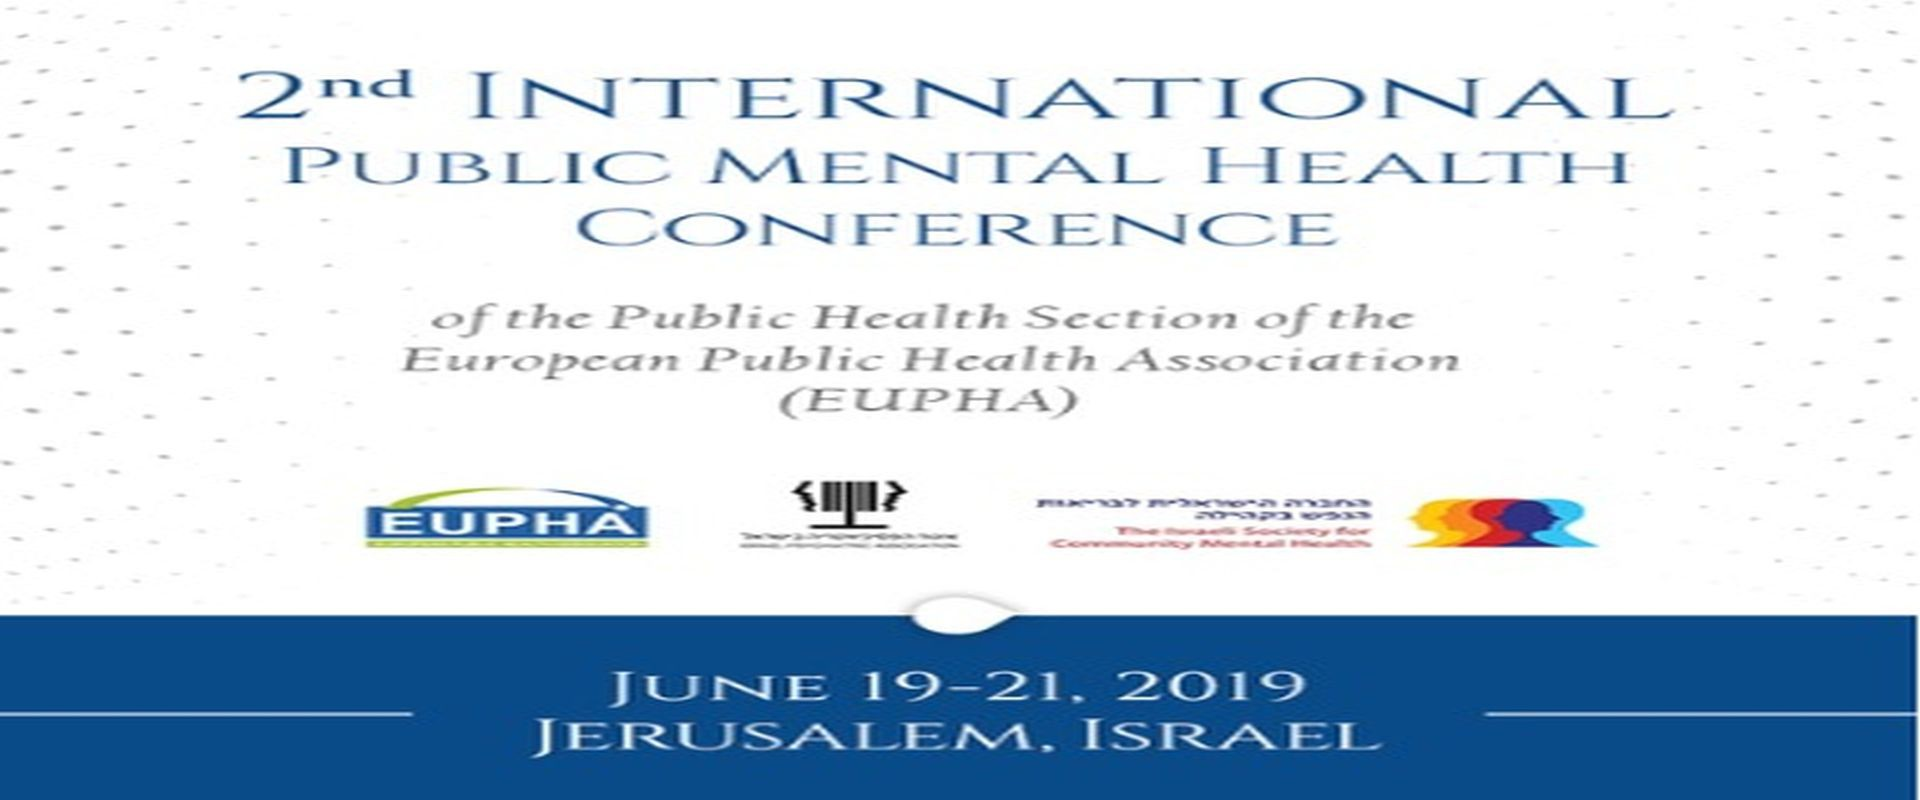 19 Jun 2019: 2nd International Public Mental Health